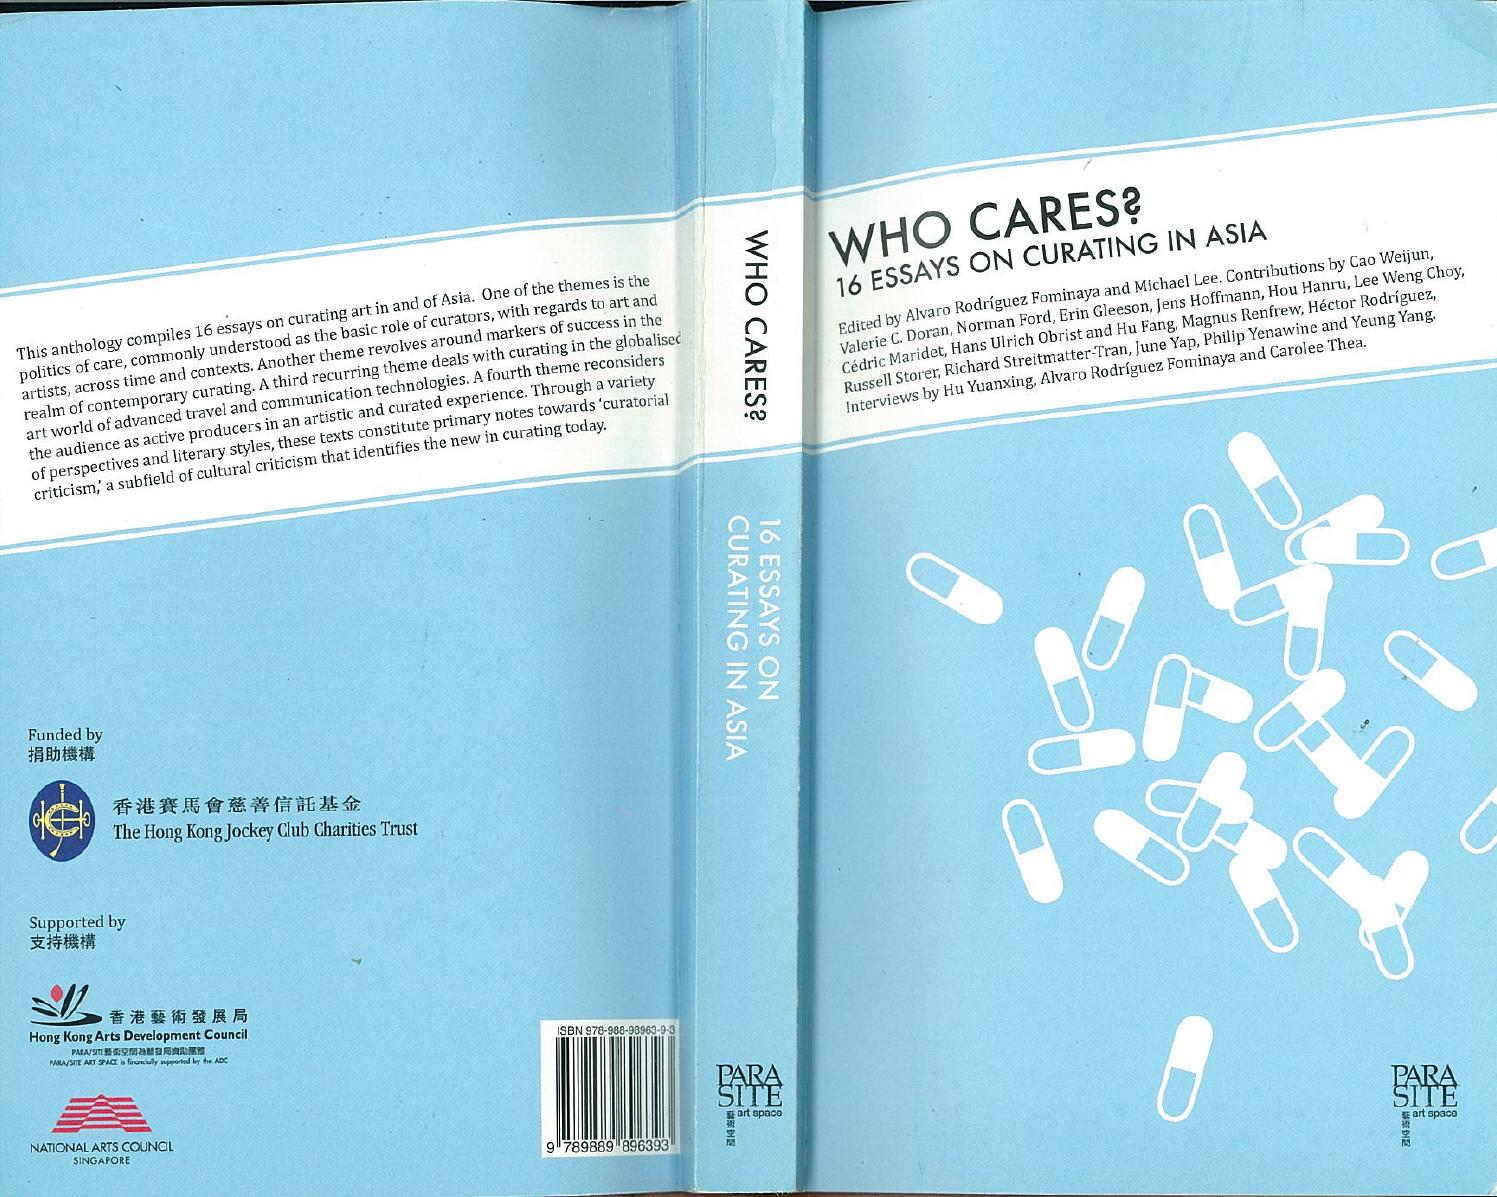 who cares 16 essays on curating in asia para site book1 3 years ago parasite hk